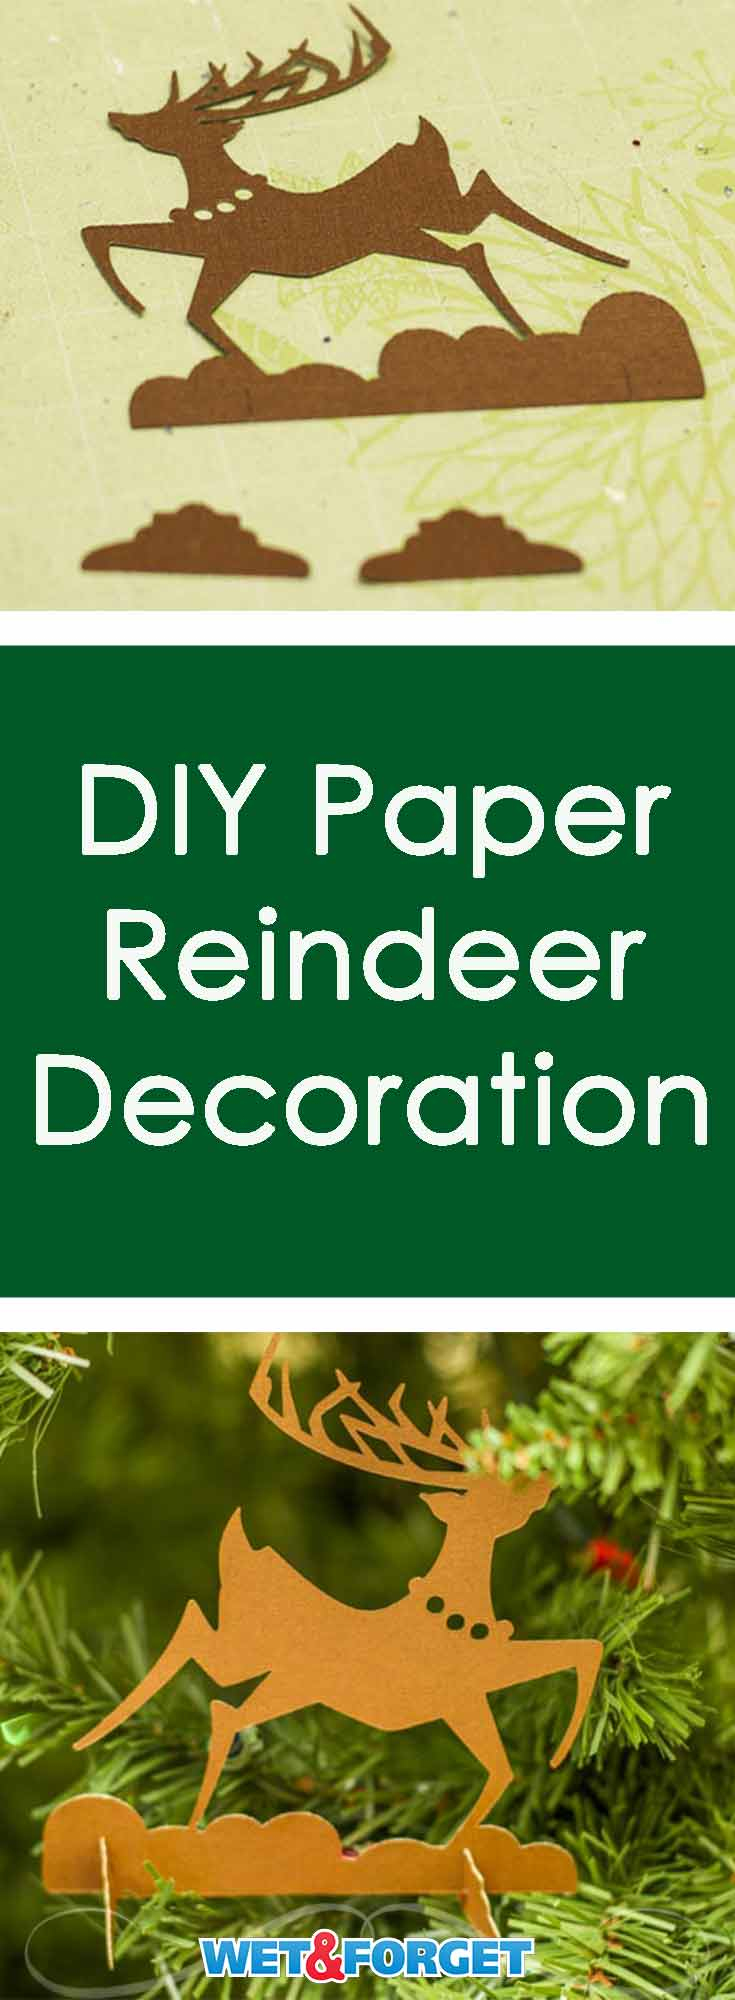 This paper reindeer make a great ornament or table decoration! Learn how to make it with our quick tutorial.